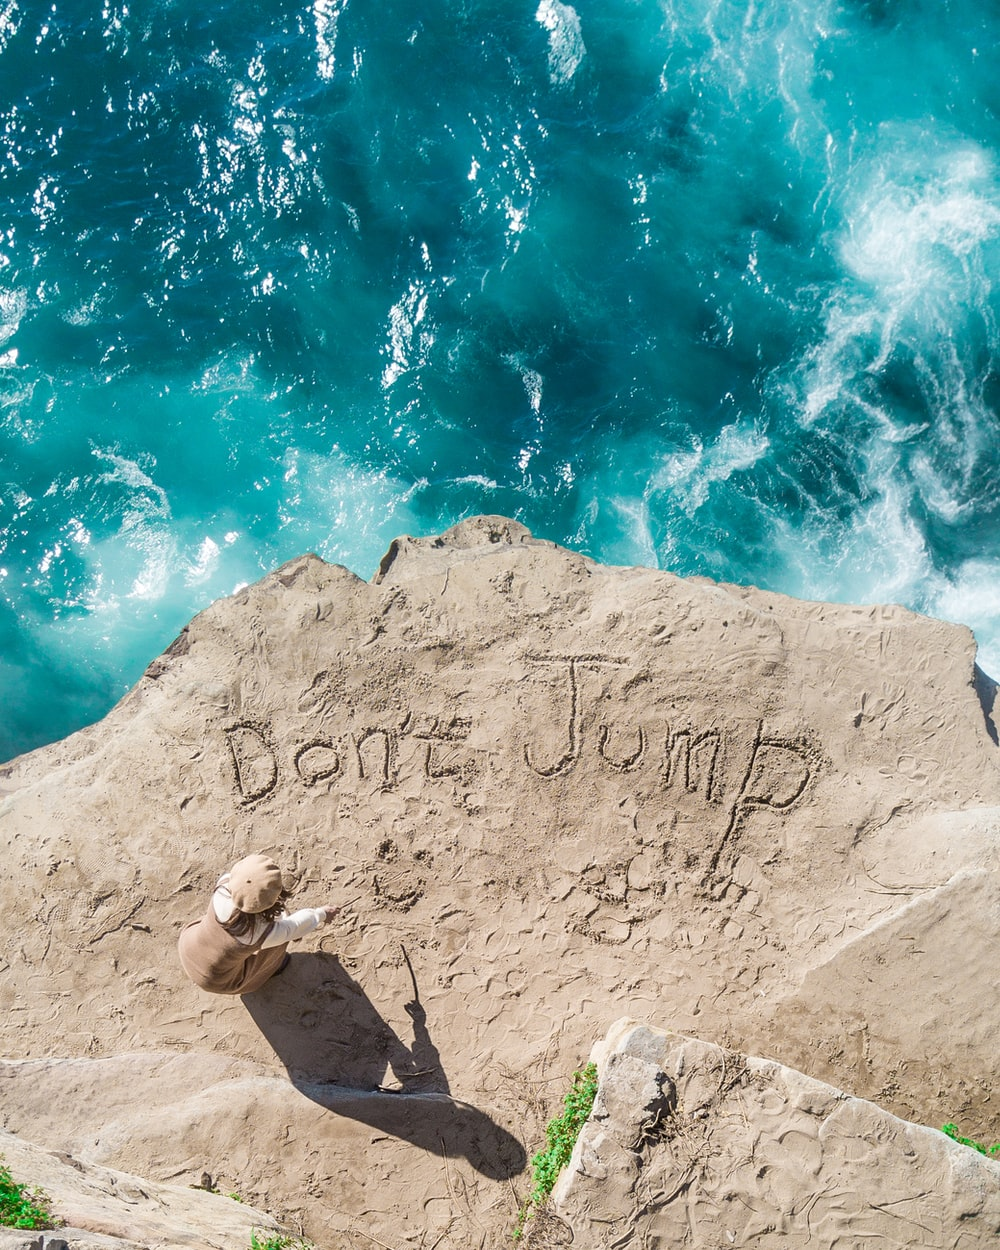 person standing on cliff writing don't jump on ground